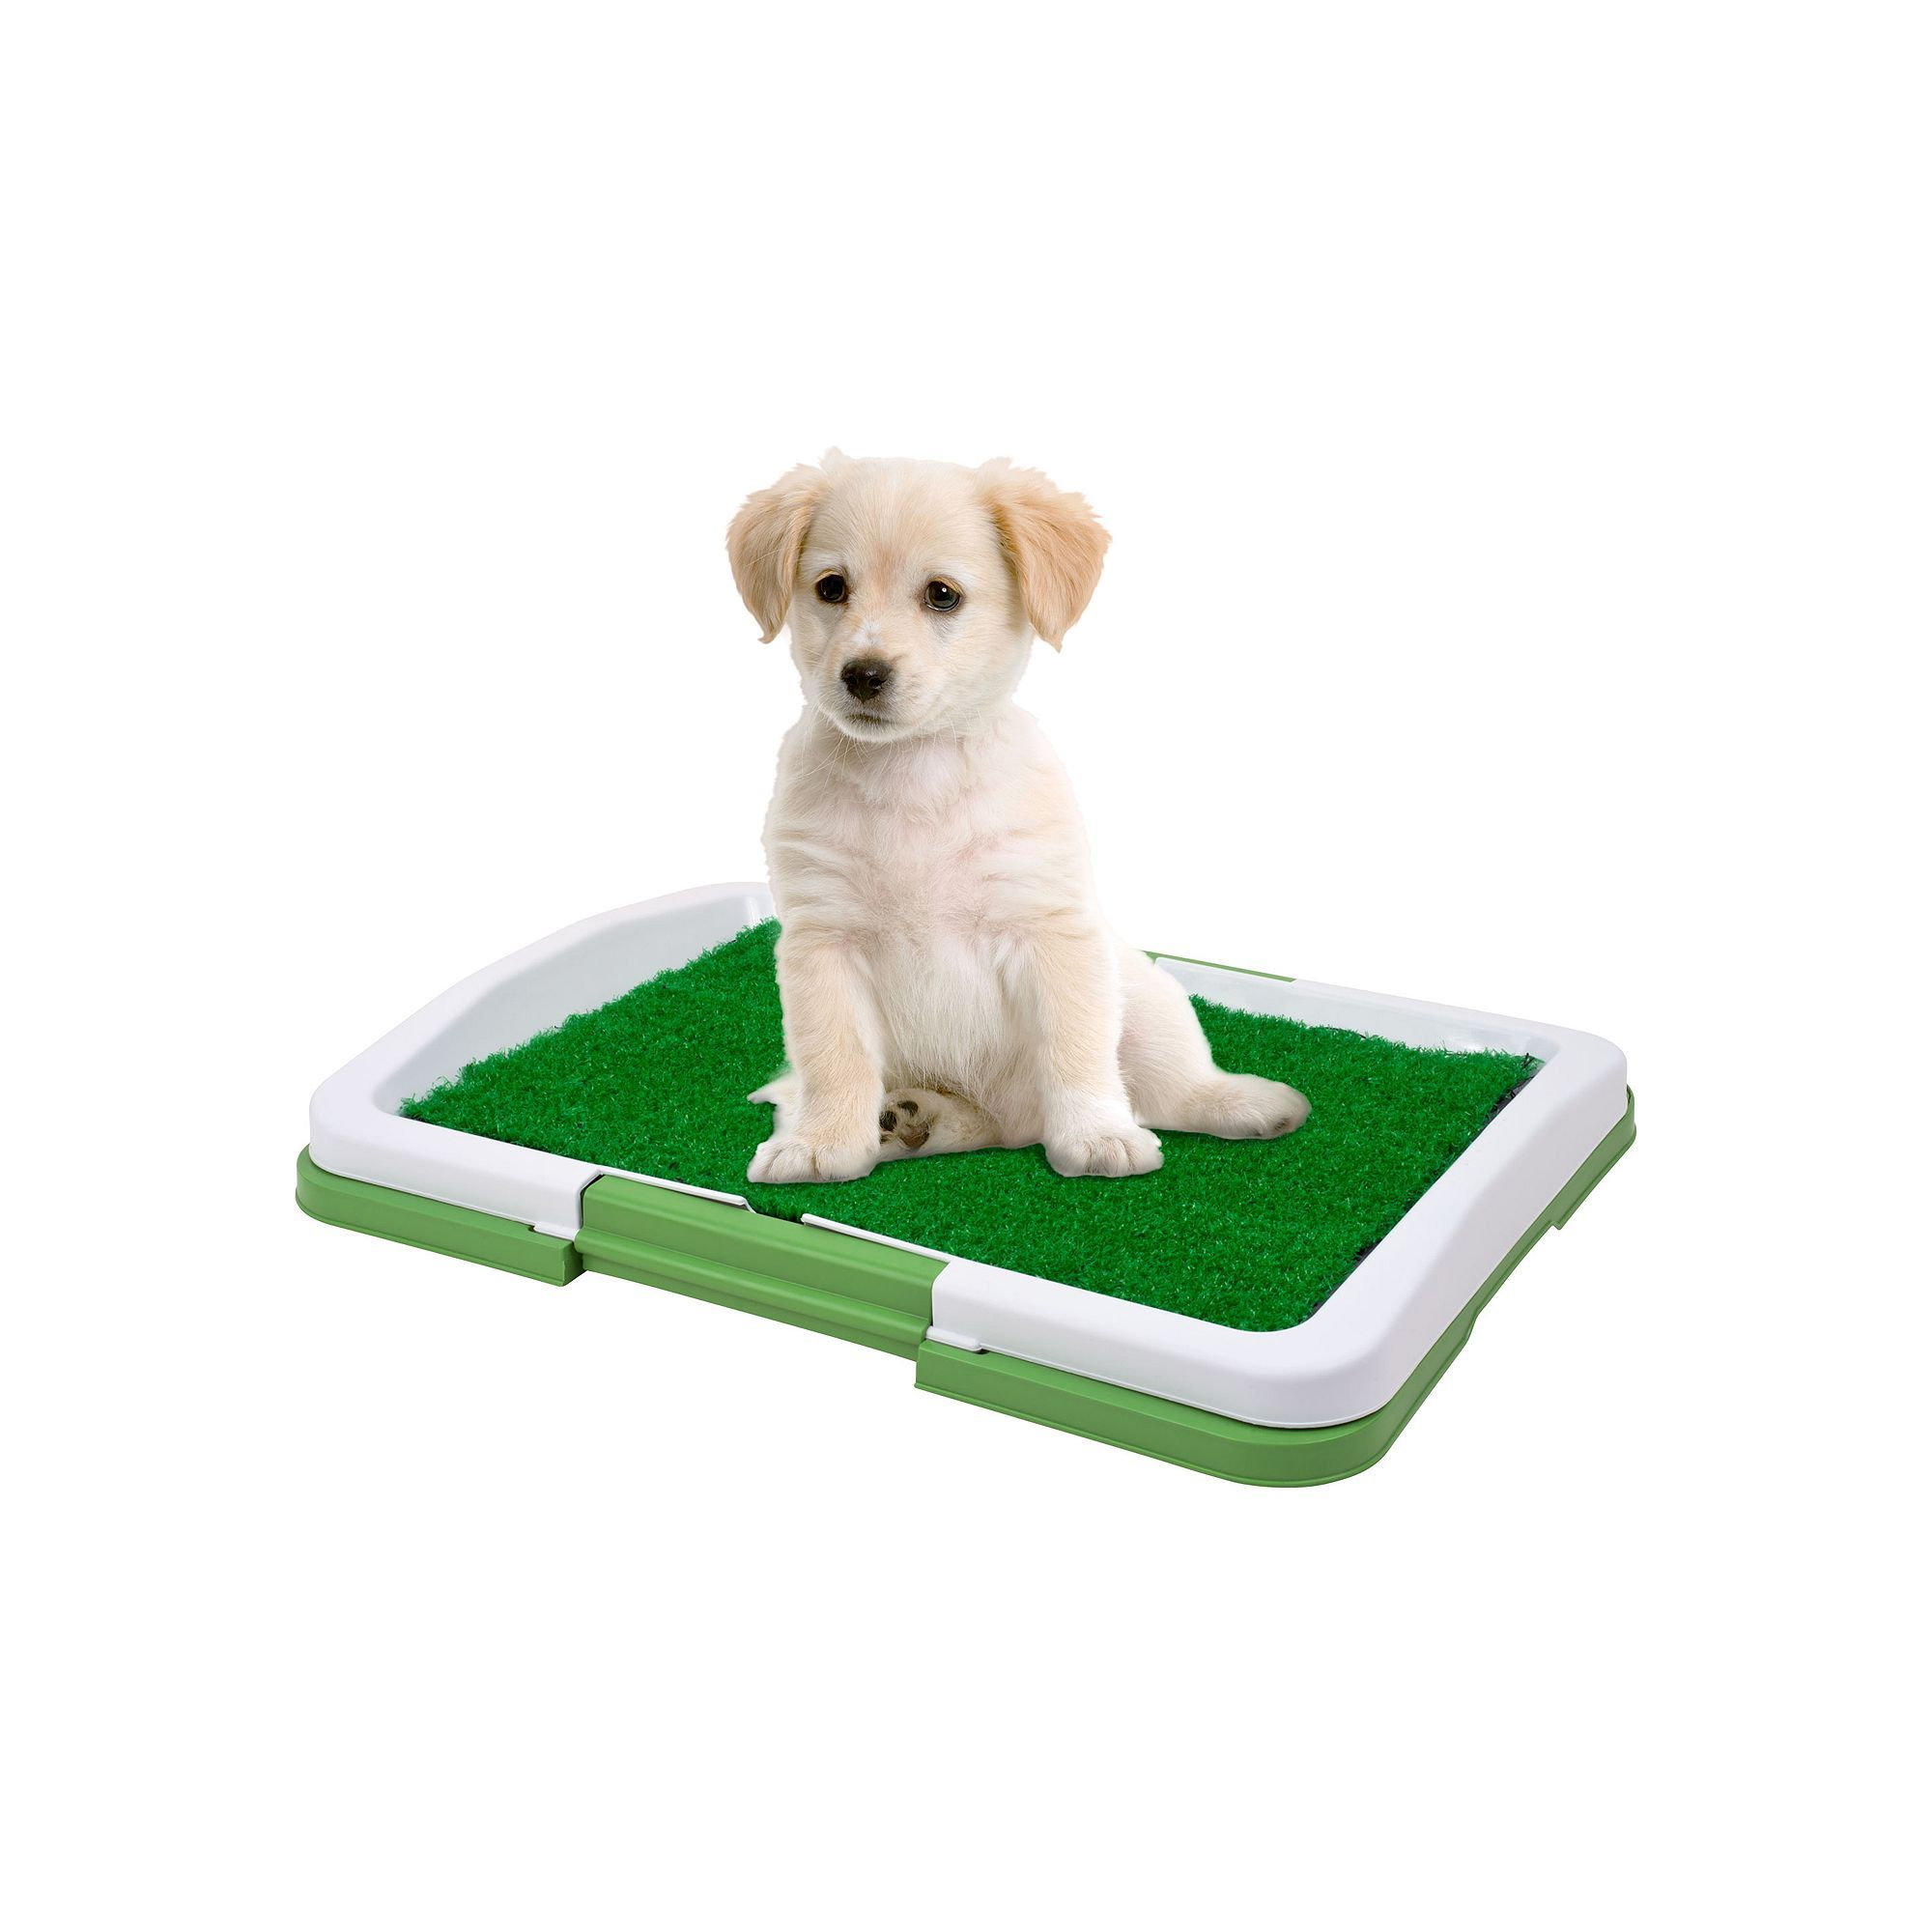 Paw Puppy Potty Trainer Indoor Restroom For Pets Dog Toilet Dog